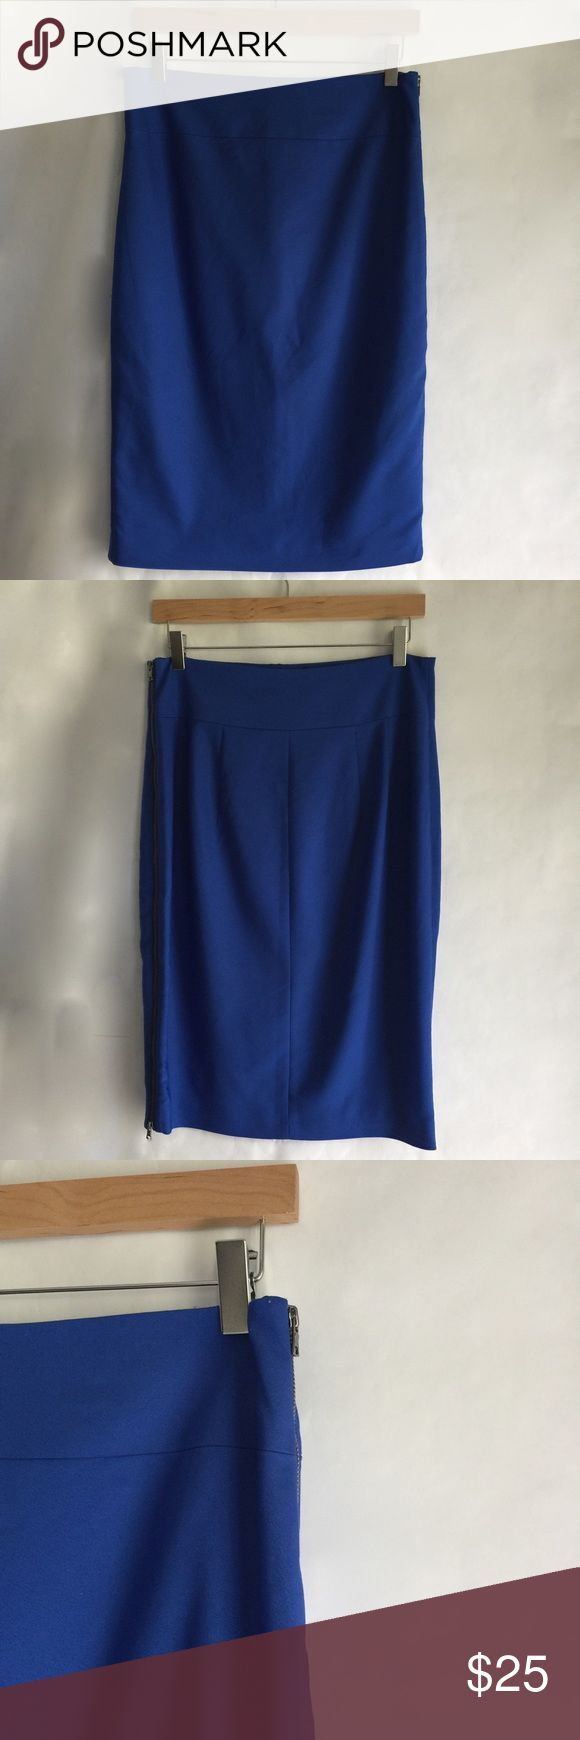 Express – Royal Blue Midi Pencil Skirt Worn only once or twice. Royal blue. High rise. Exposed zipper on left side. Unzip as much as you want. Skirt Length: 26 inches. Express Skirts Midi